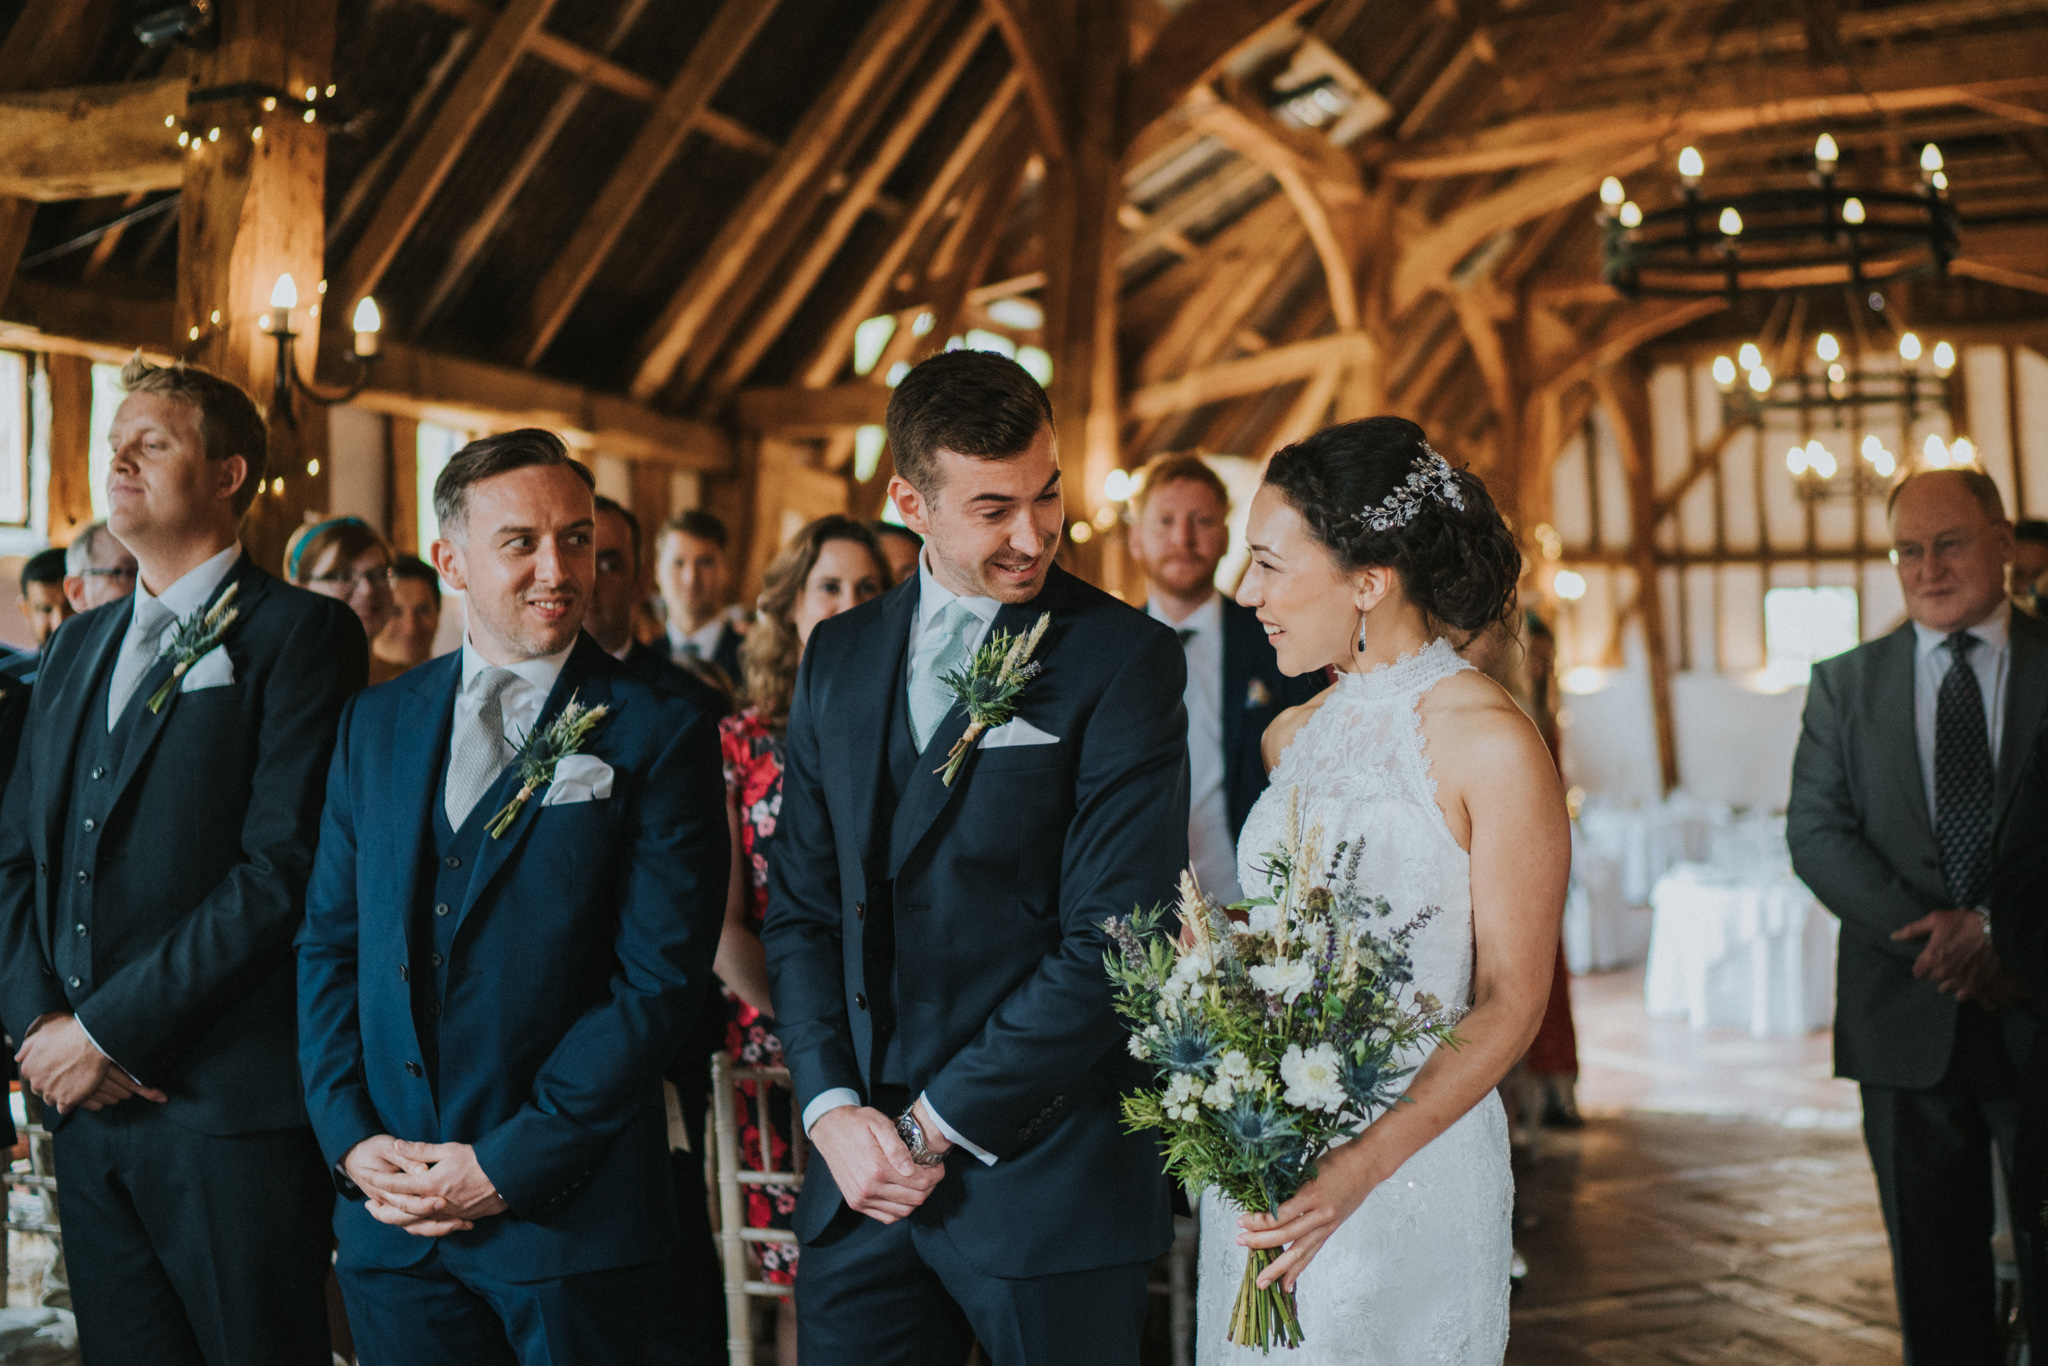 jane-patrick-smeetham-hall-barn-grace-elizabeth-colchester-essex-alternative-wedding-lifestyle-photographer-essex-suffolk-norfolk-devon (17 of 52).jpg